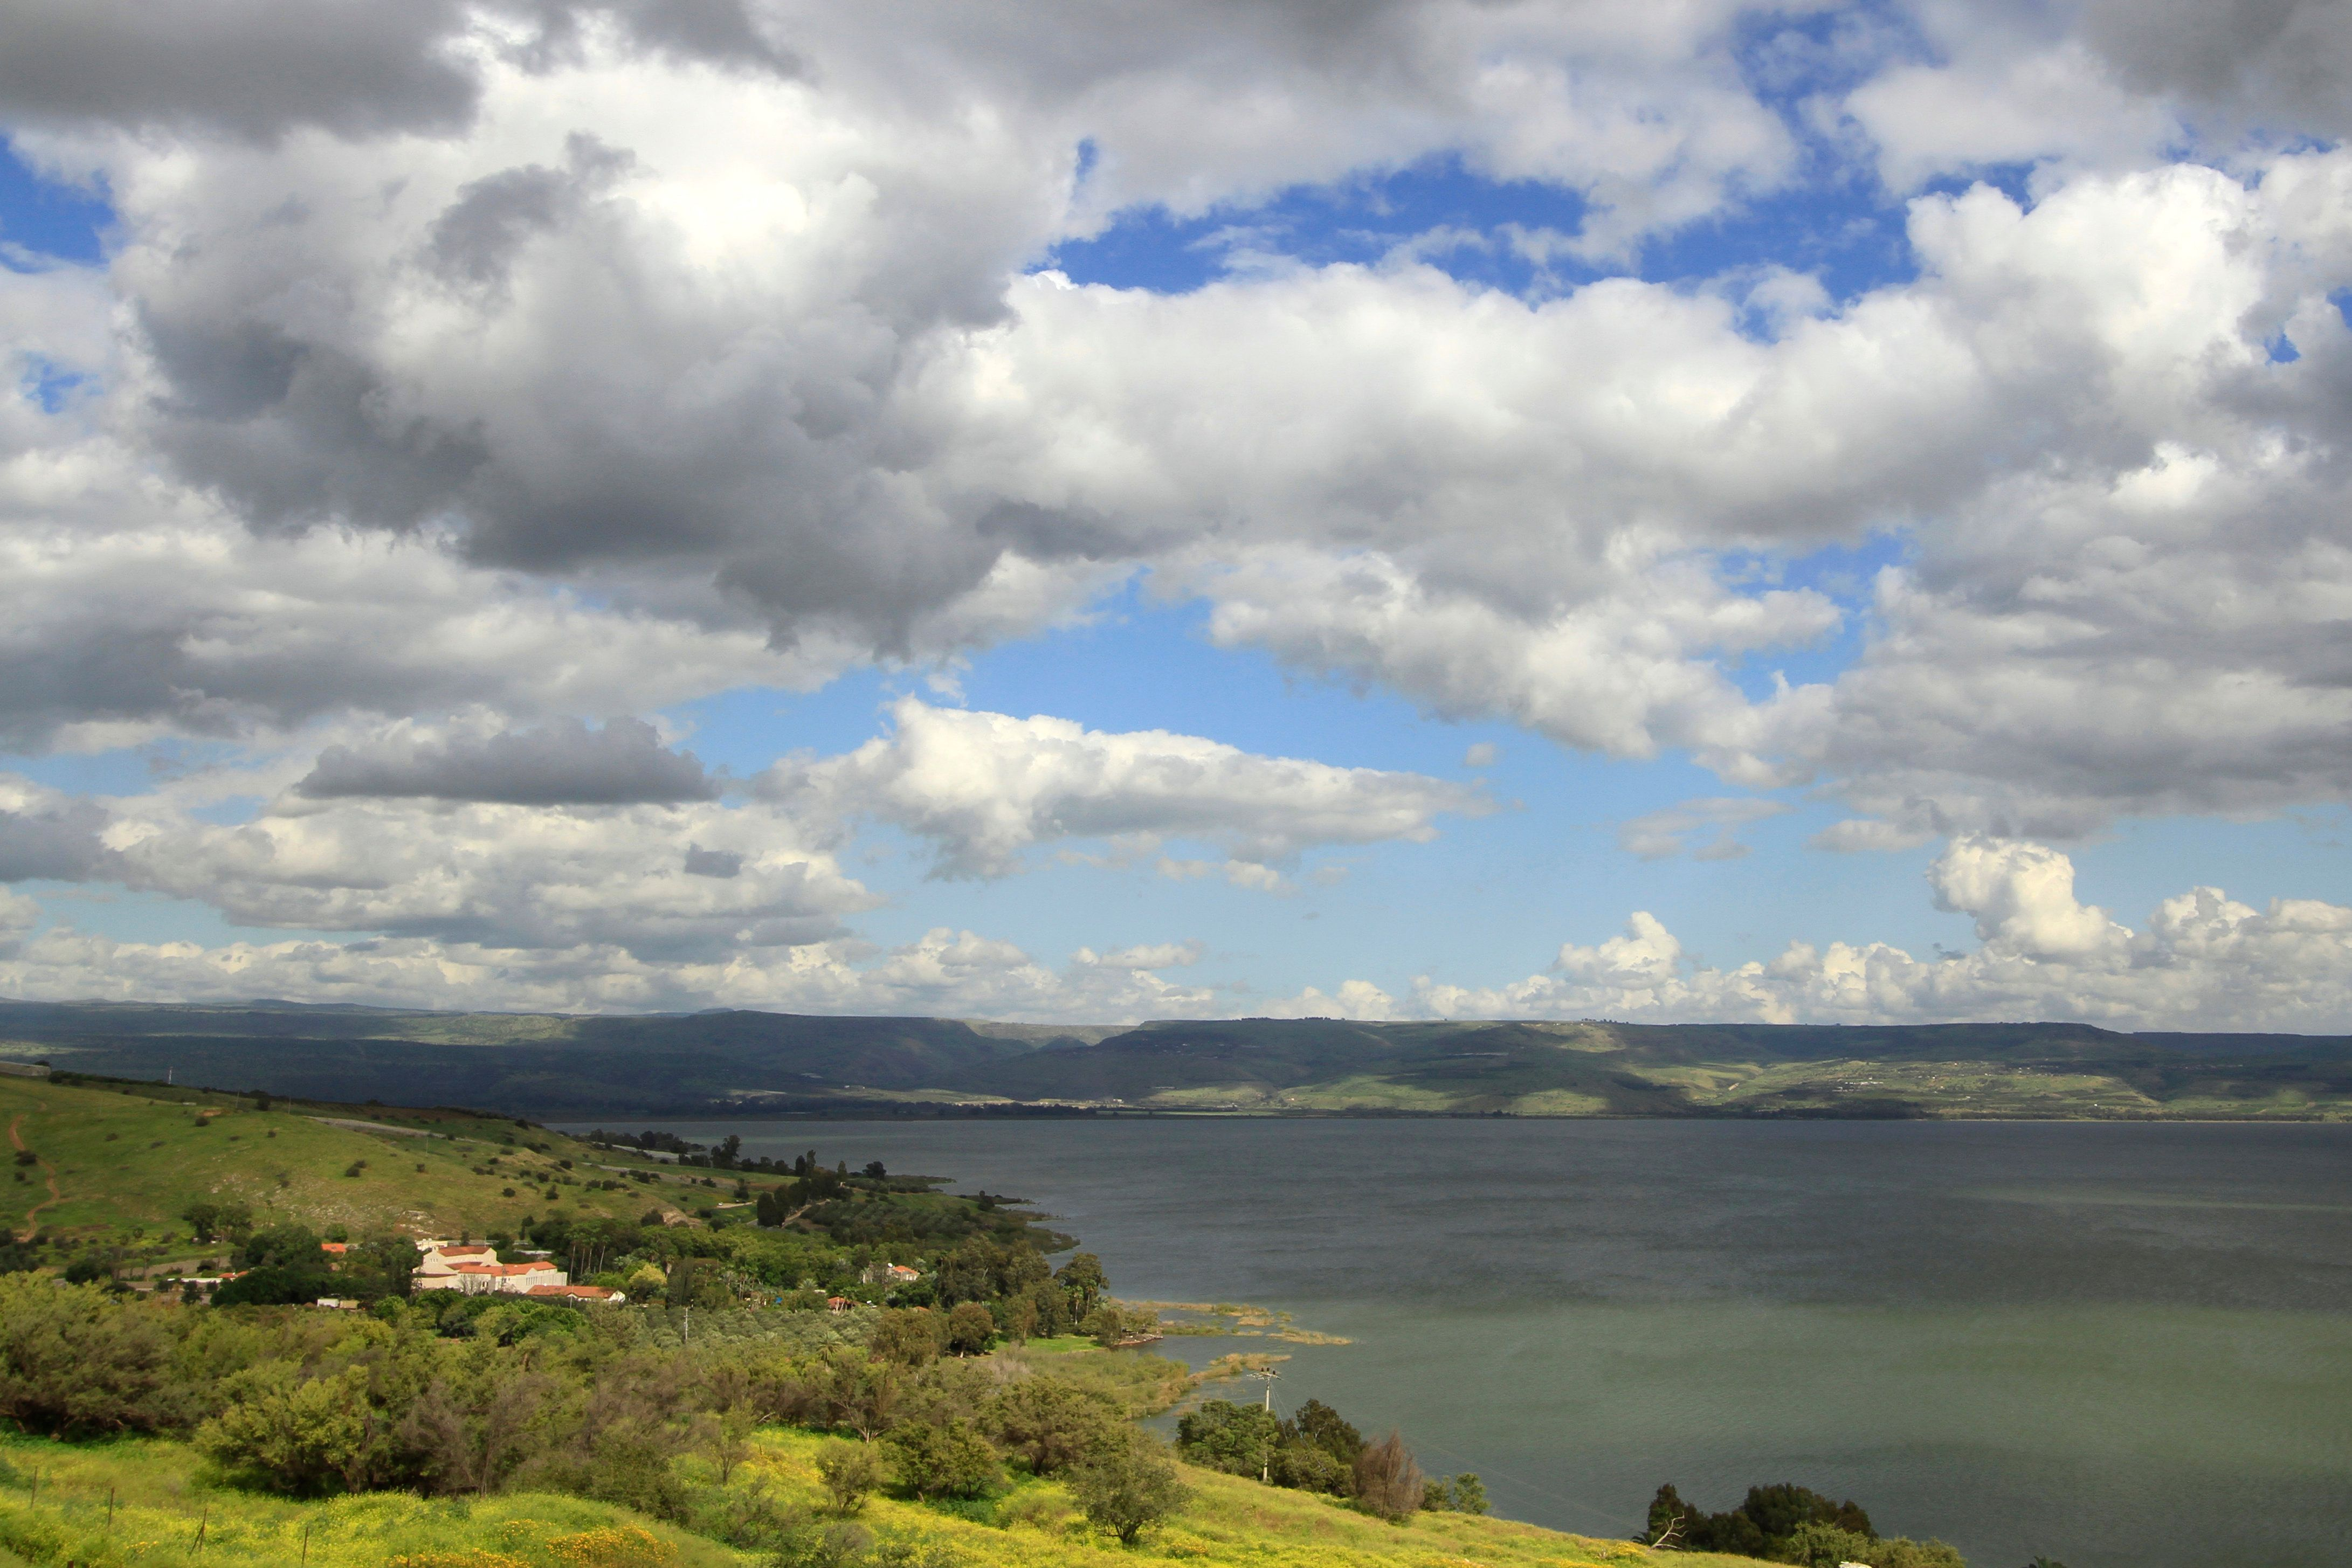 A view of the Church of the Multiplication of the Loaves and Fishes in Tabgha, Israel and the Sea of Galilee.